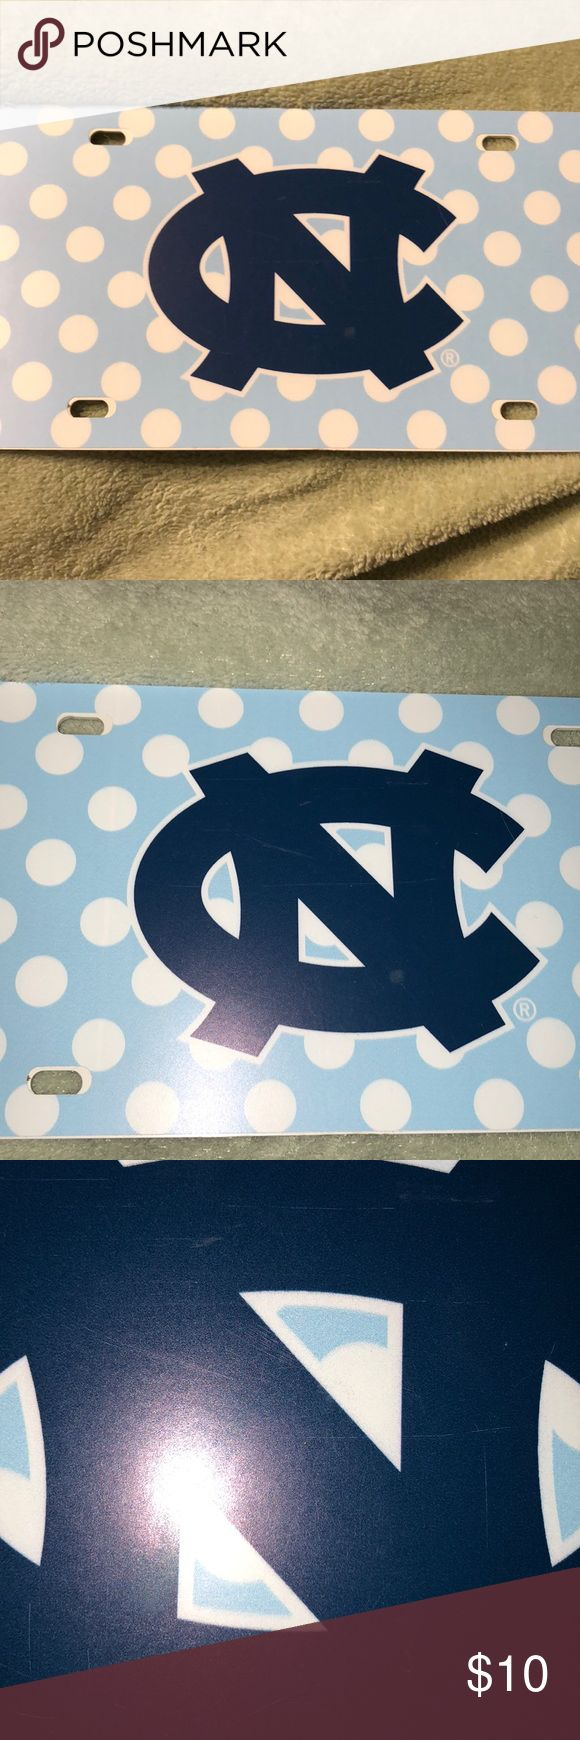 License plate UNC Chapel Hill license plate!  Perfect for those die hard Tar Heel fans 👣 Never been used, but couple scratches on logo (pictured in last photo) Other